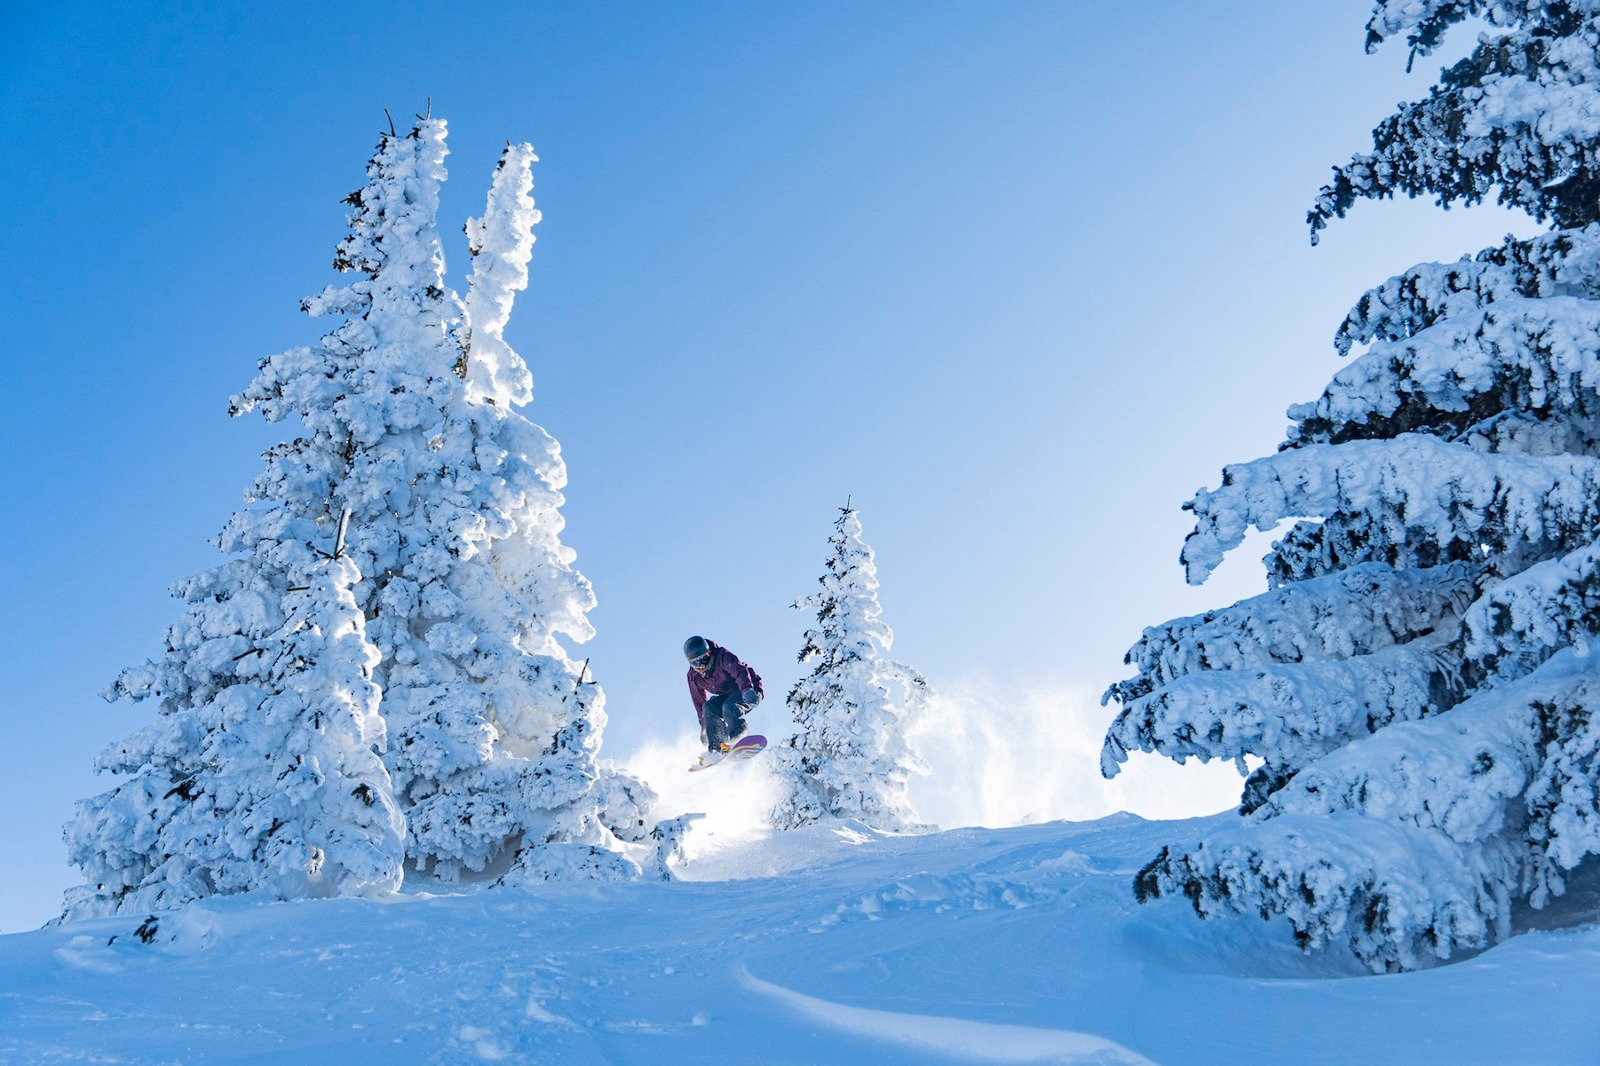 Image of a snowboarder hitting backcountry trails in Ski Santa Fe in New Mexico